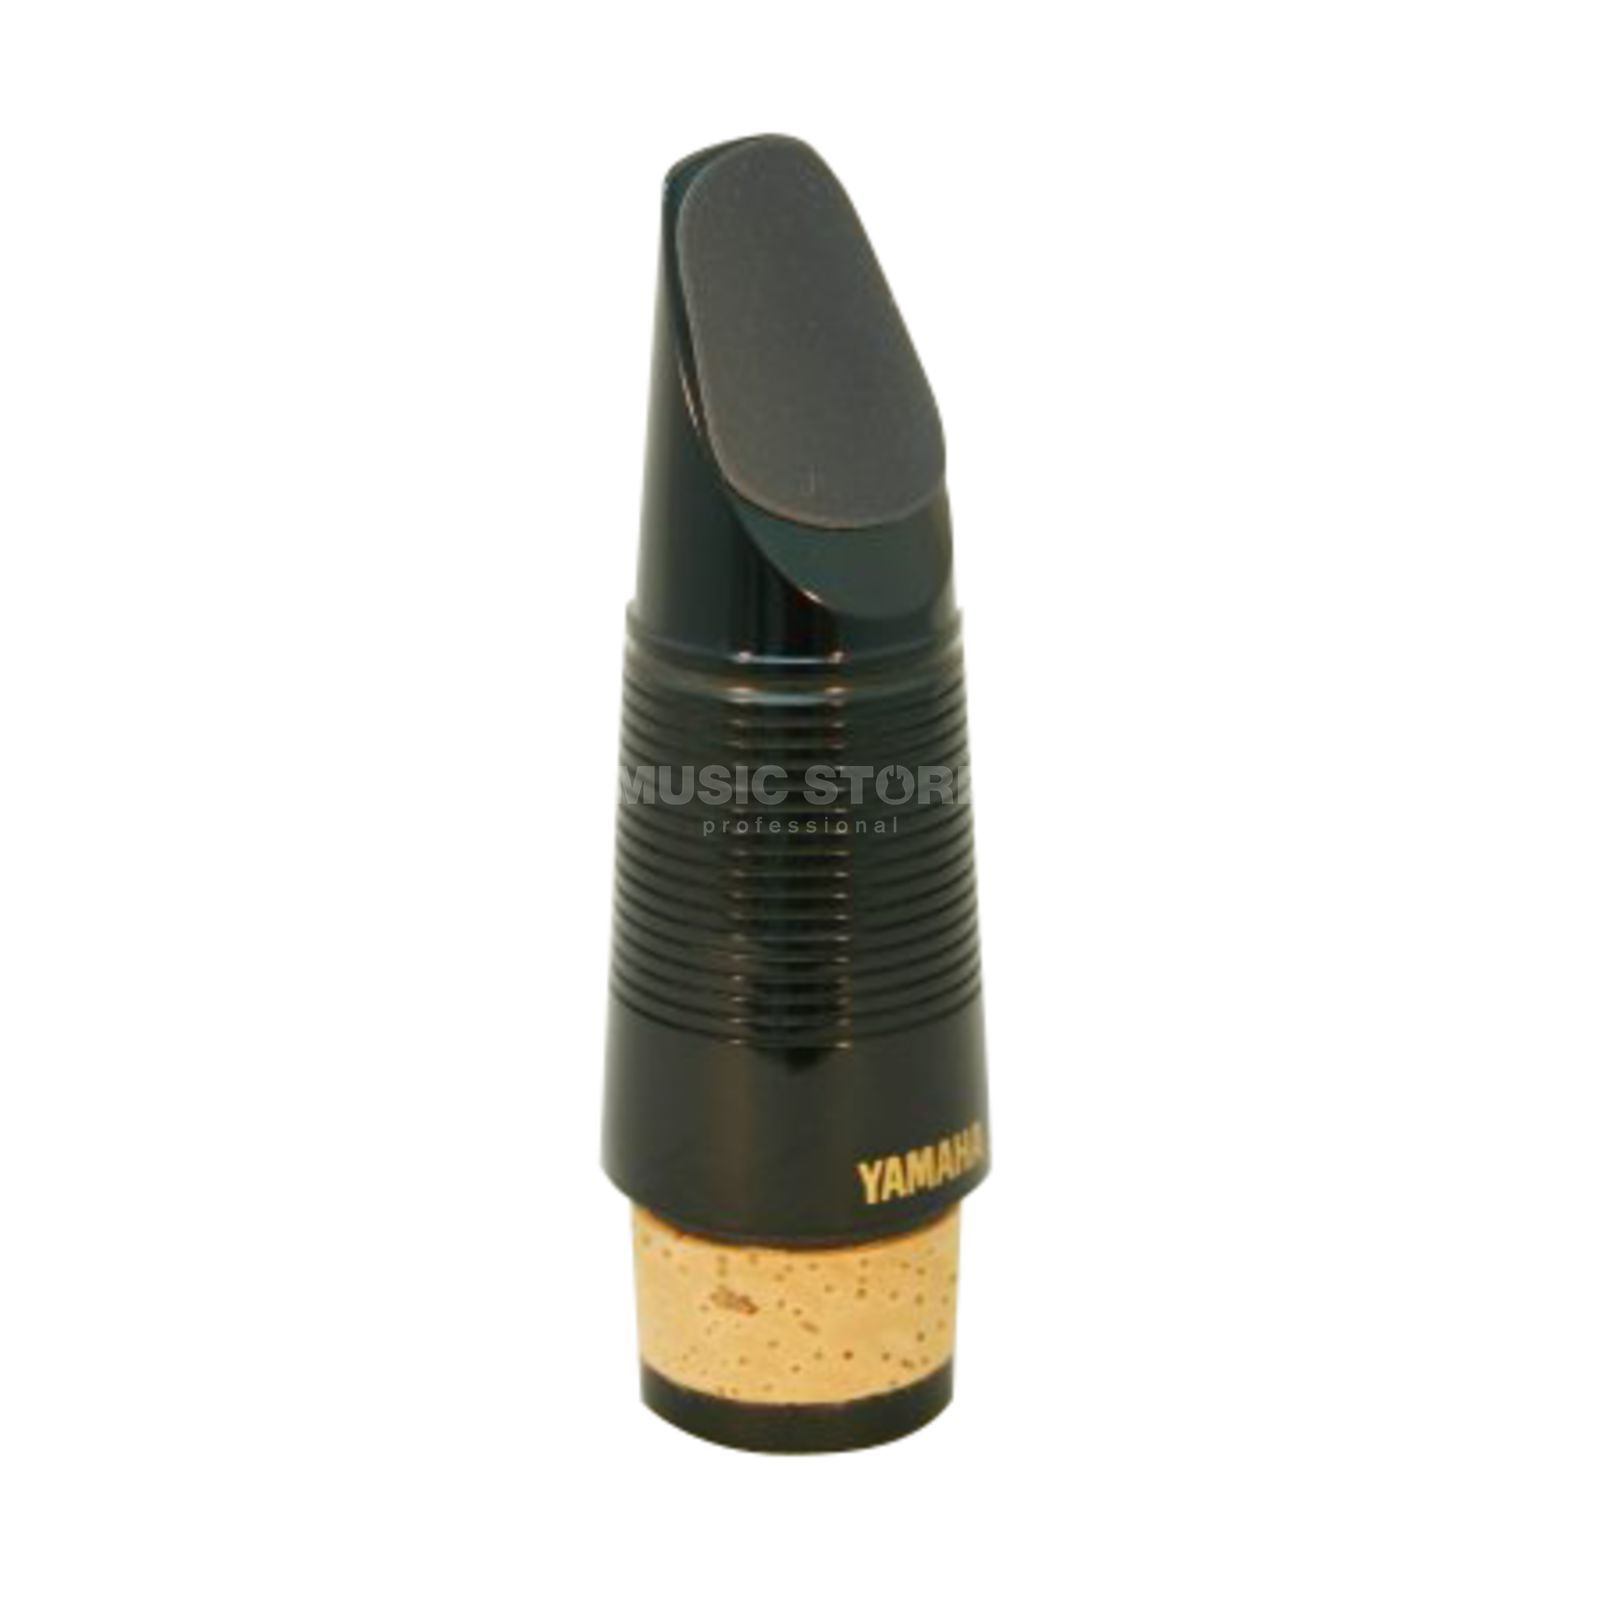 Yamaha M3D Bb Clarinet Mouthpiece Product Image